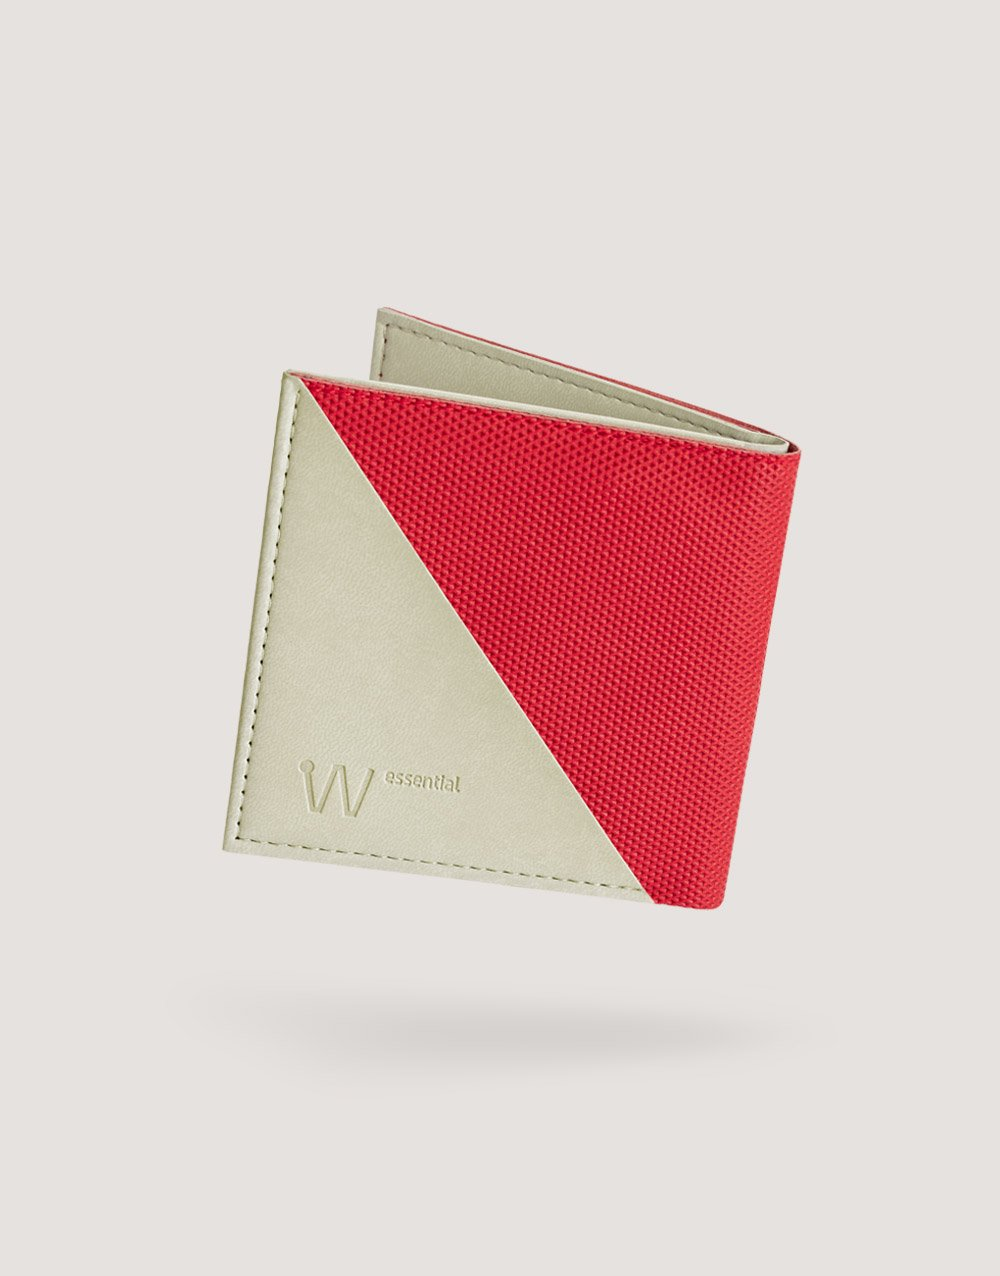 Baggizmo Wiseward Essential RFID protected wallet in cardinal red color